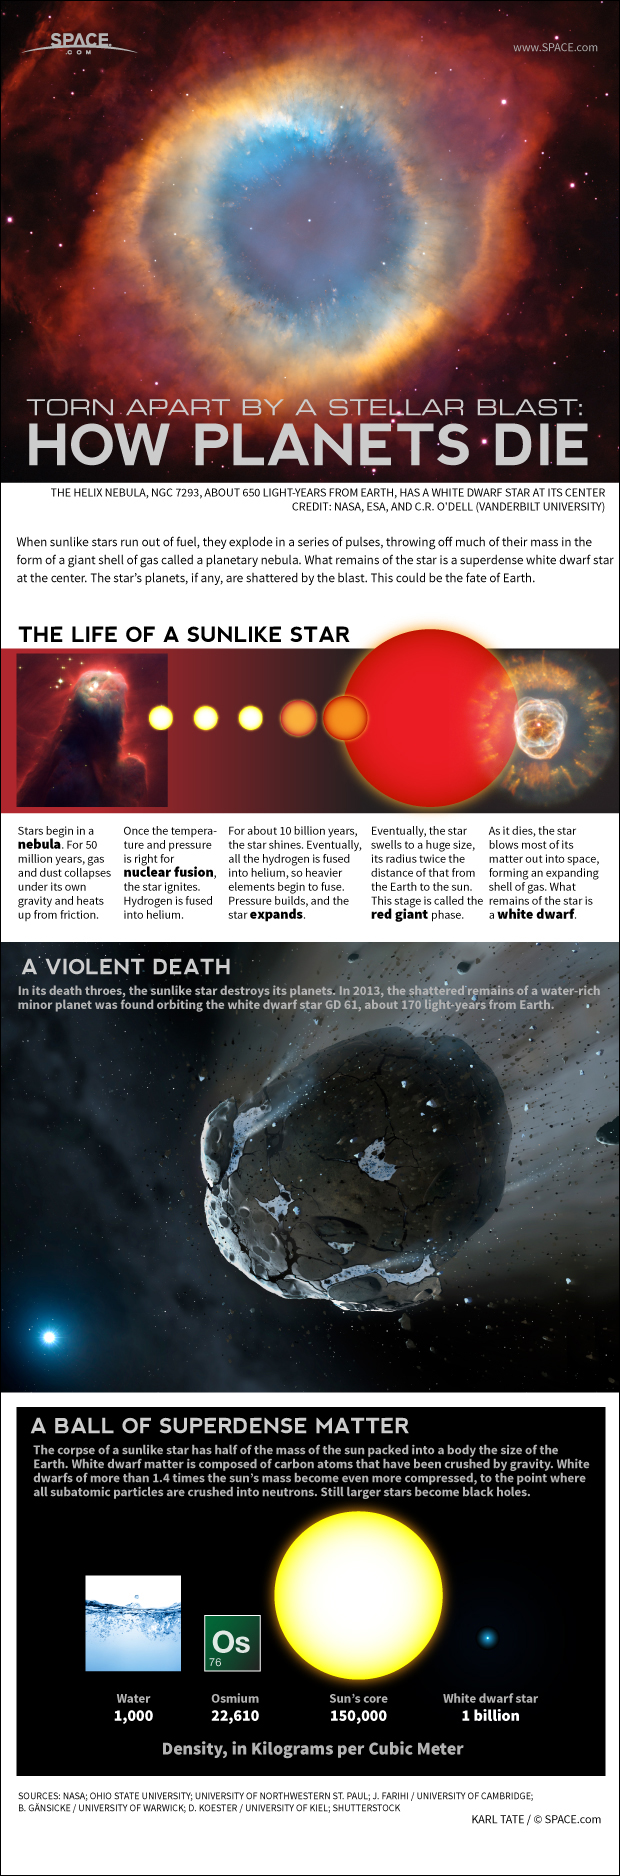 Death of a Sunlike Star: How It Will Destroy Earth (Infographic)